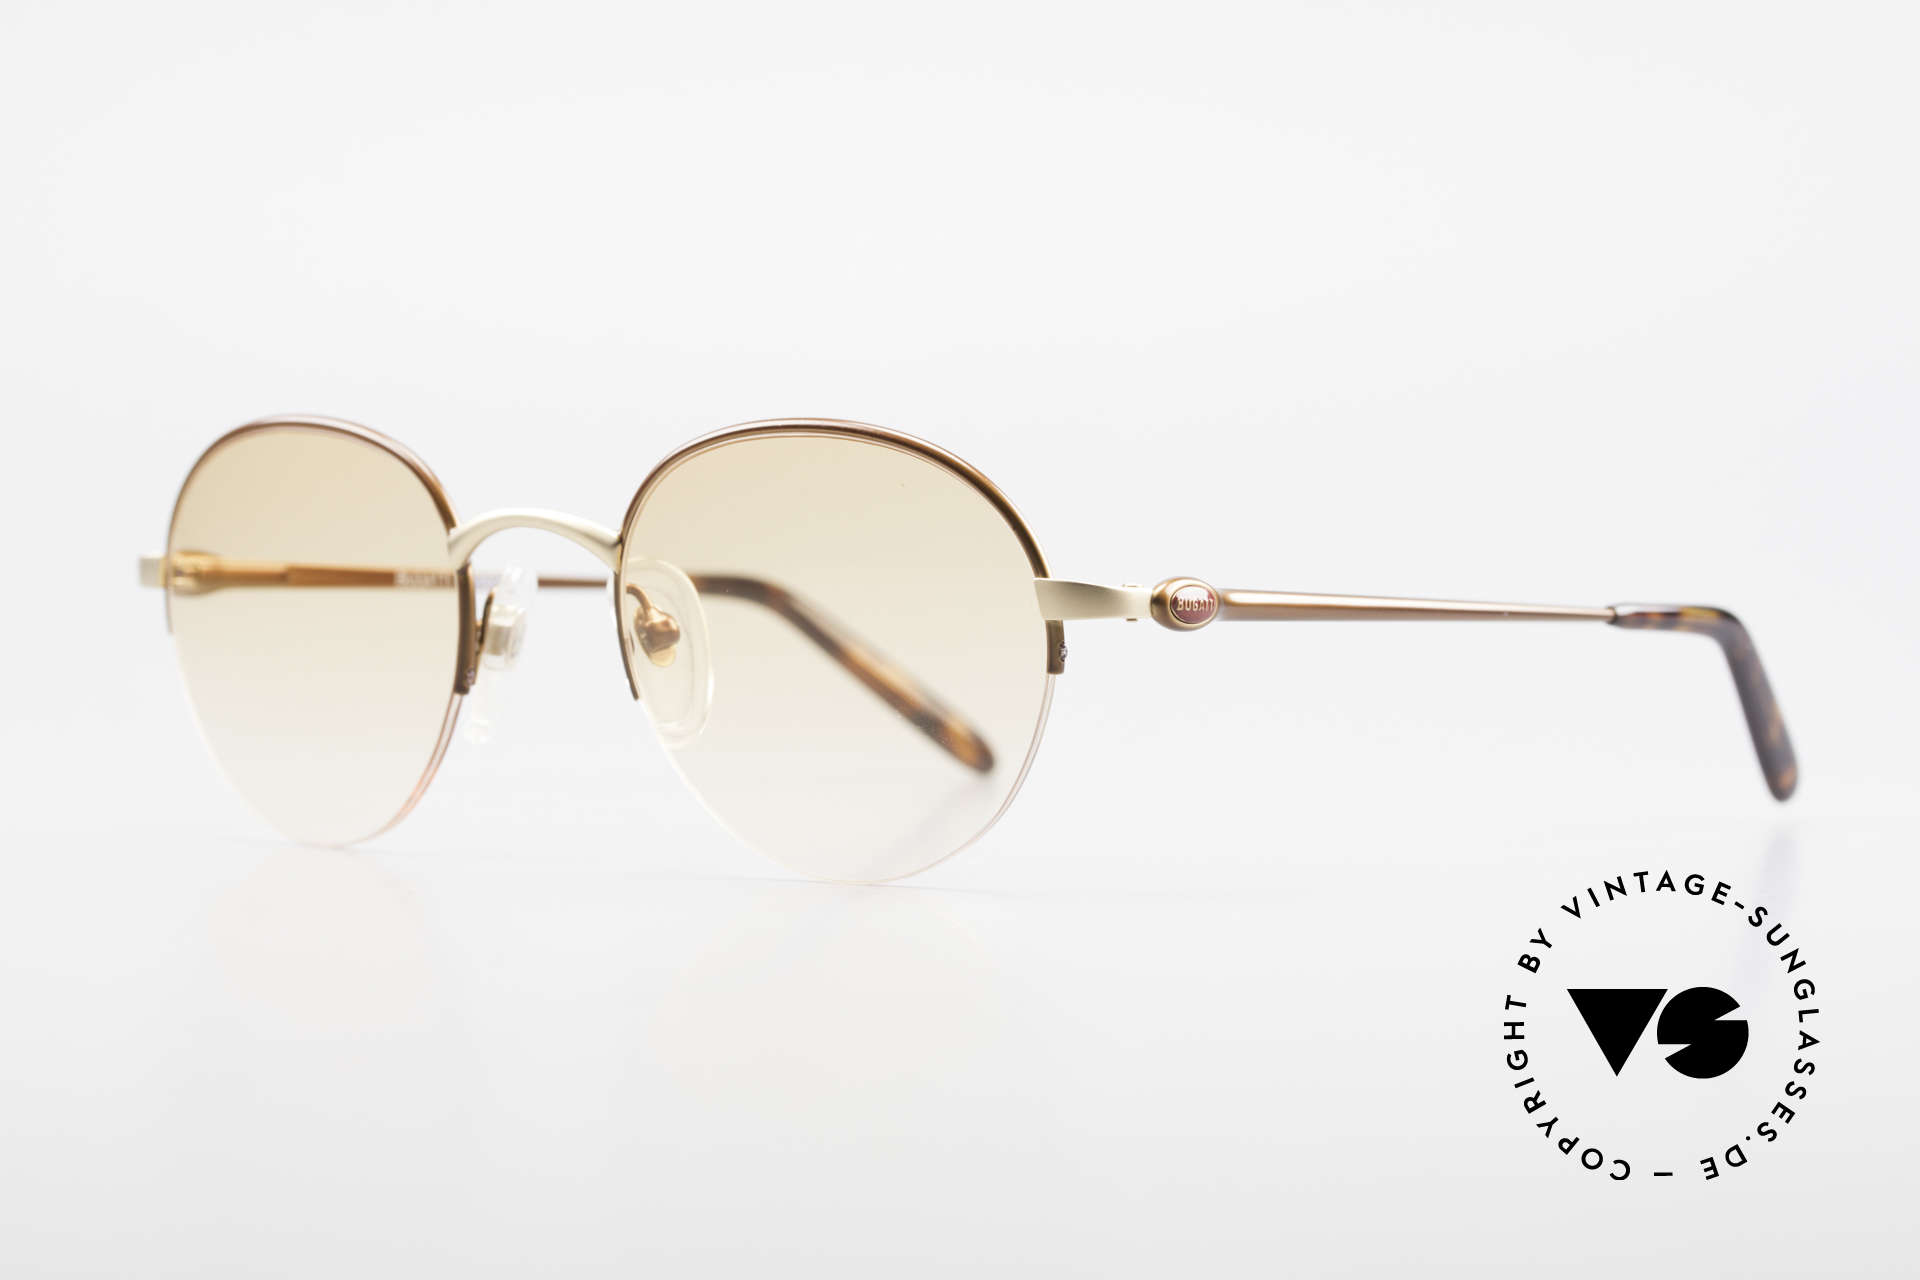 Bugatti 26669 Rare Bugatti Panto Sunglasses, dull gold/dull brown metallic & with flexible hinges, Made for Men